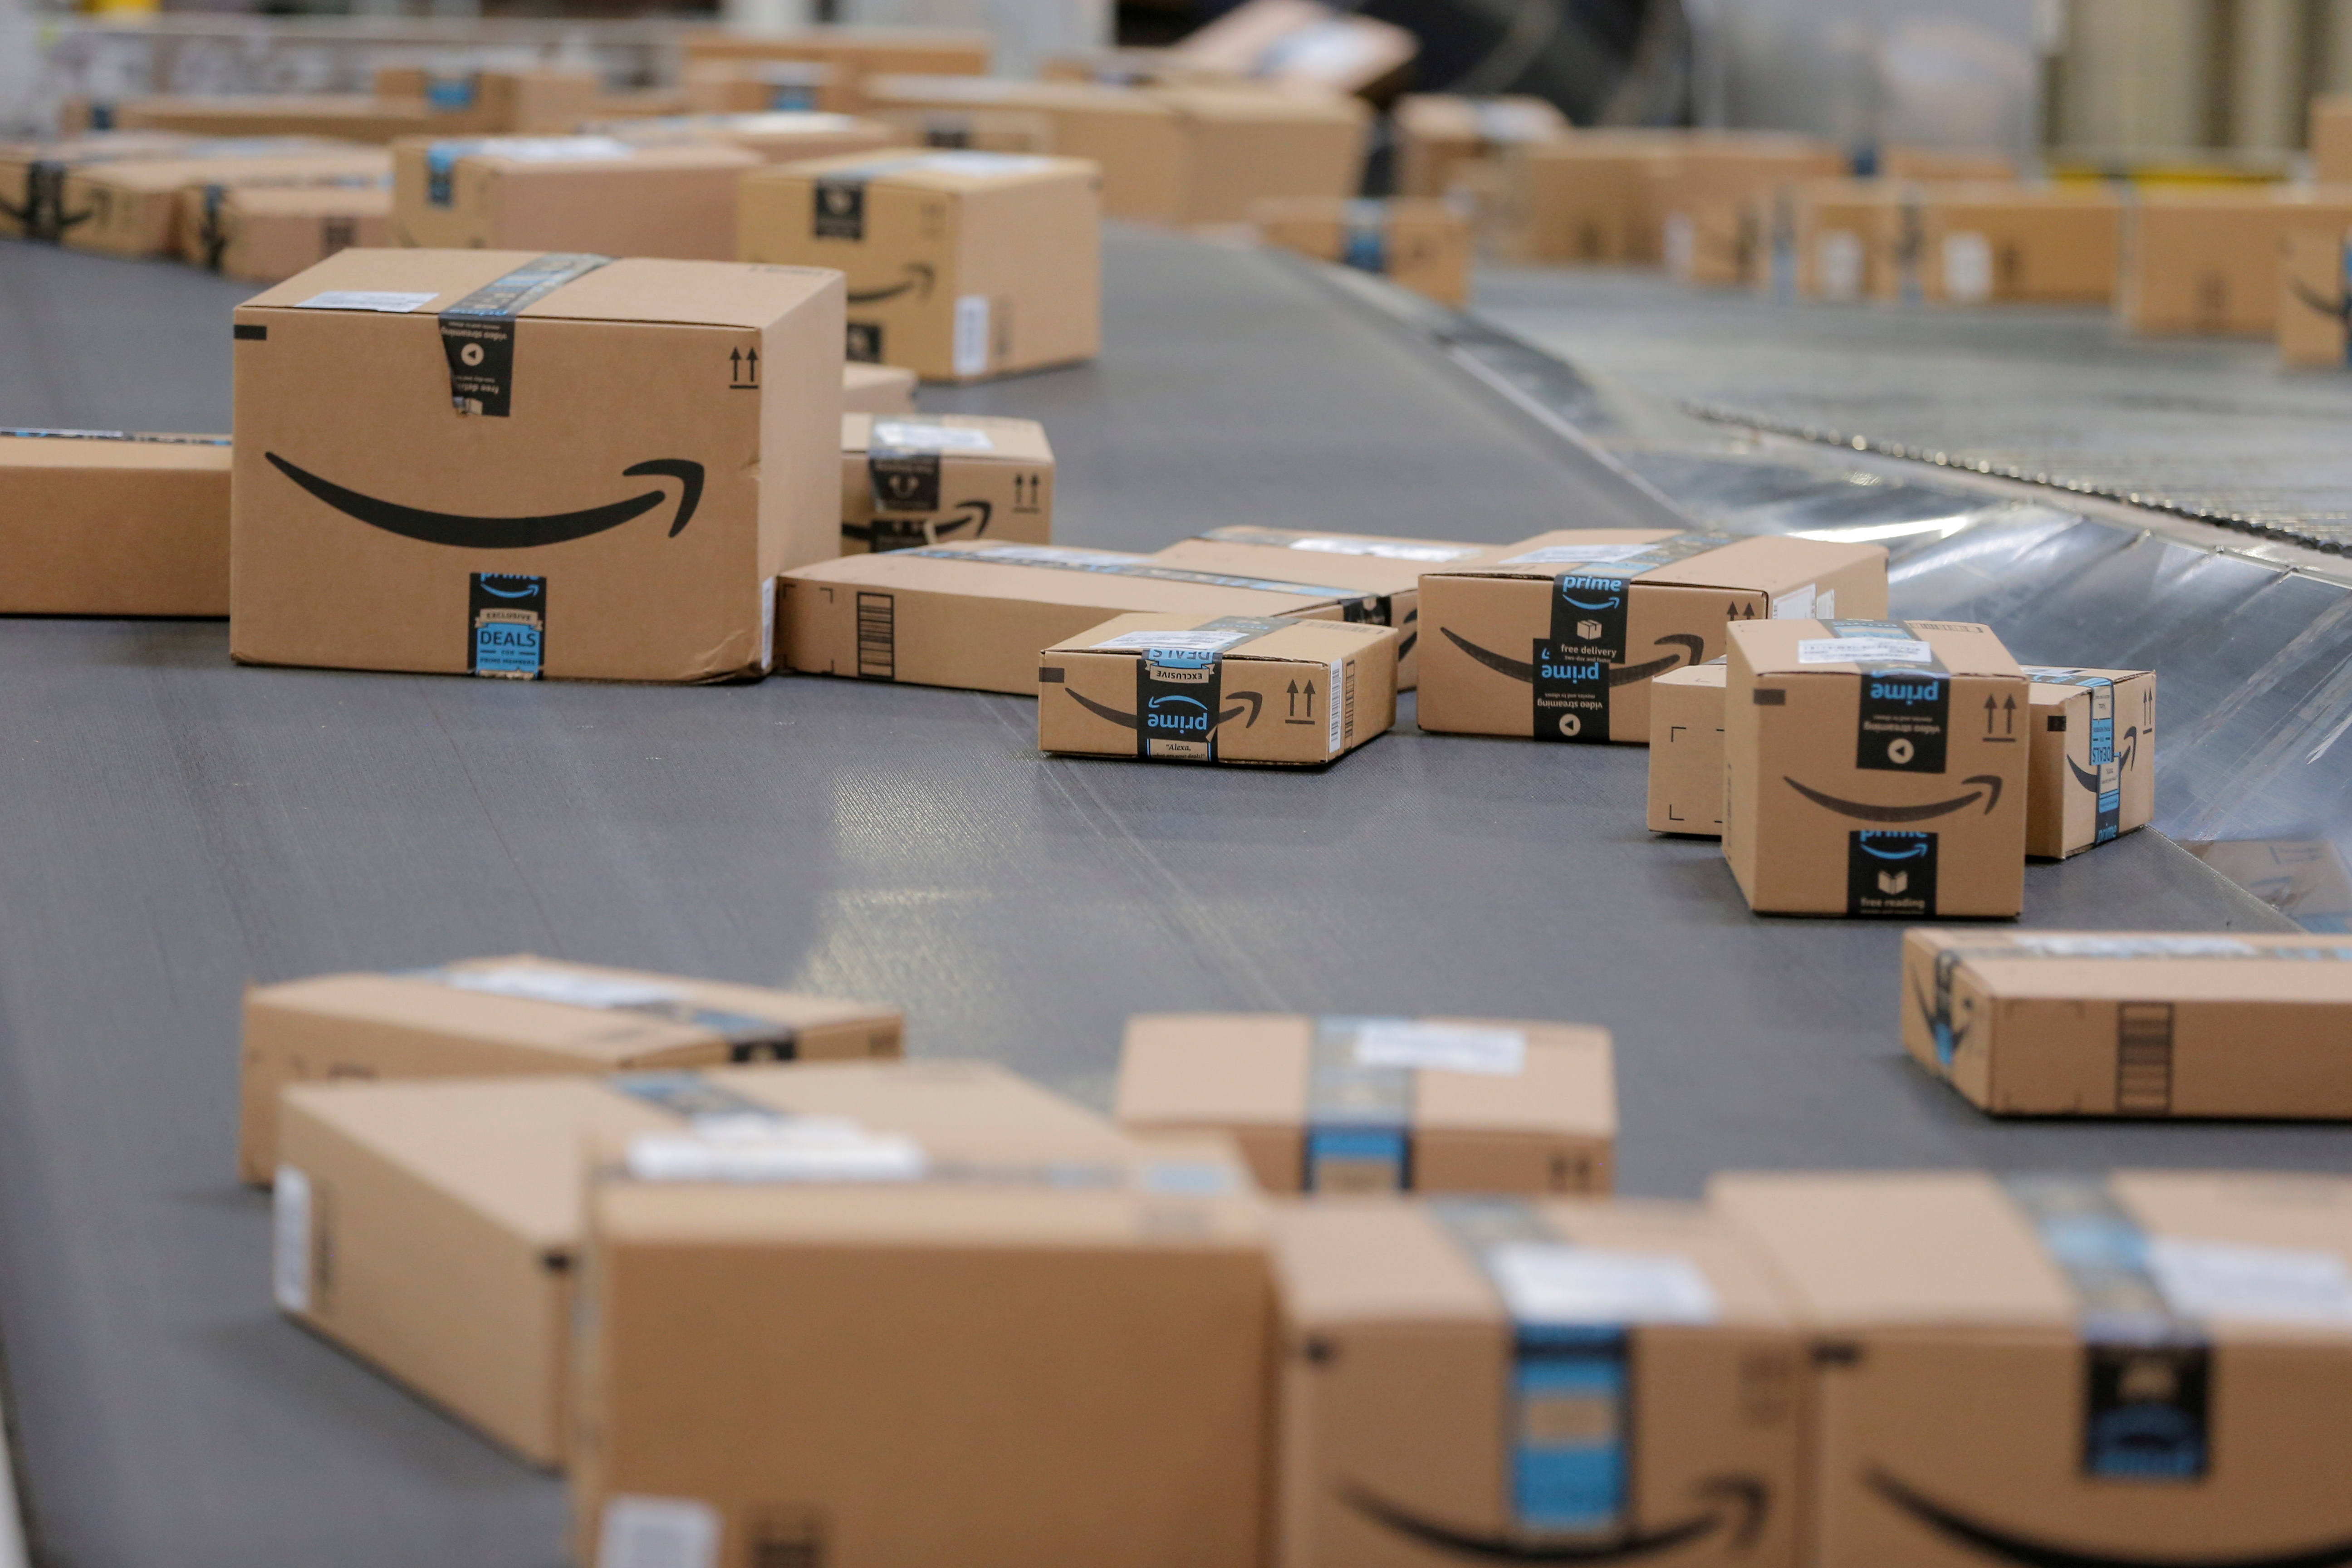 Packages emblazoned with Amazon logos travel along a conveyor belt inside of an Amazon fulfillment center in Robbinsville, New Jersey, U.S., November 27, 2017.  REUTERS/Lucas Jackson